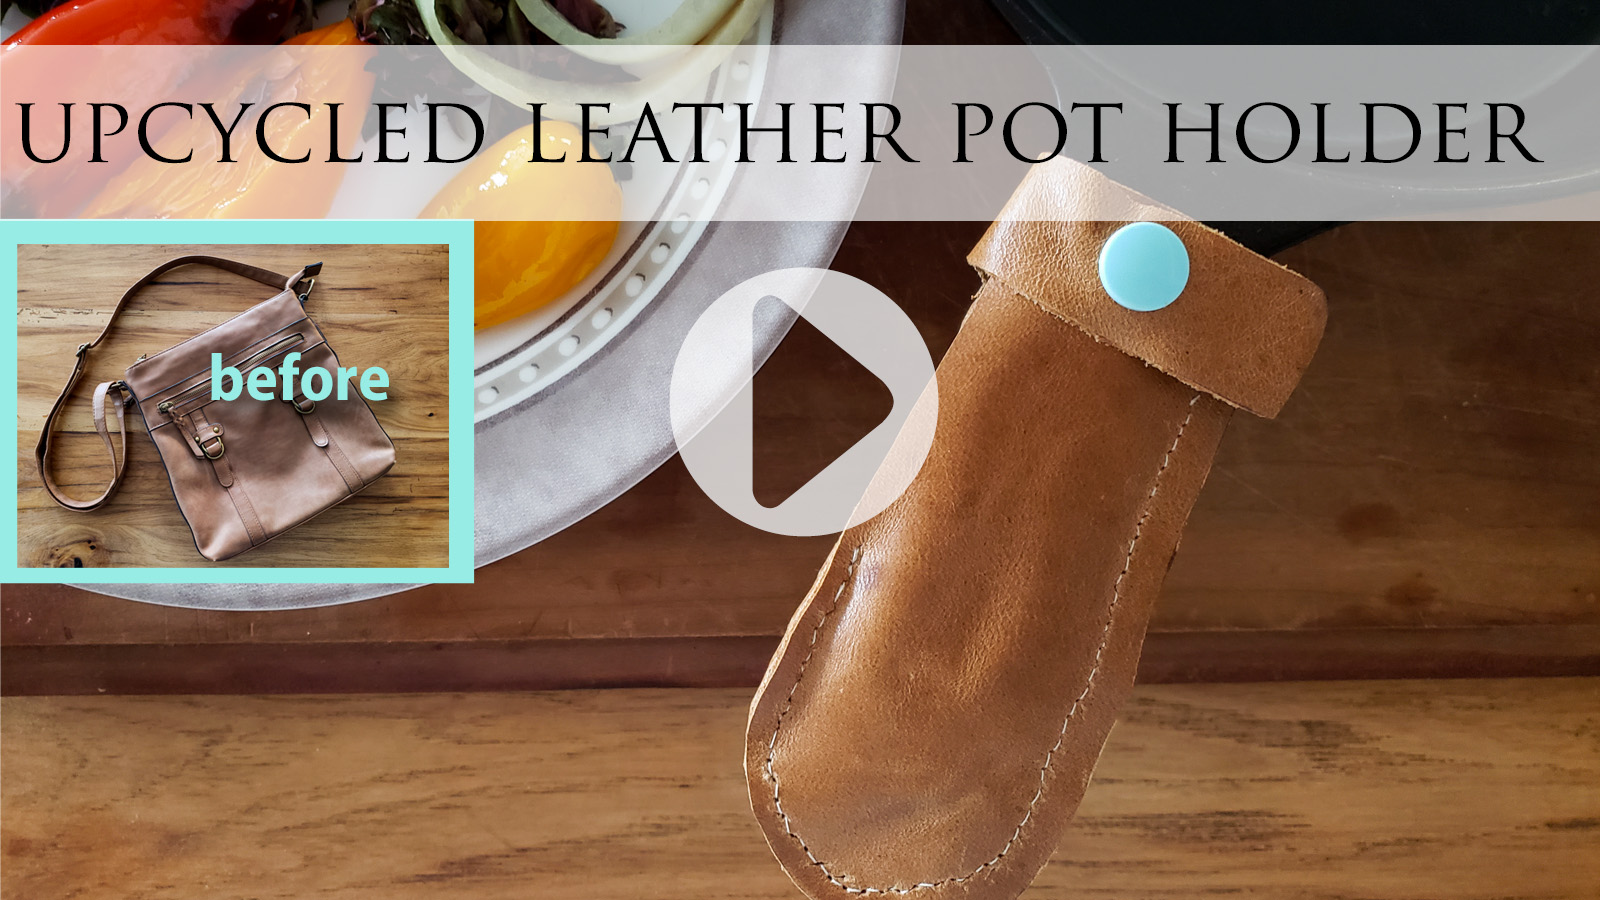 Upcycled Leather Pot Holder from Refashioned Purse by Prodigal Pieces   prodigalpieces.com